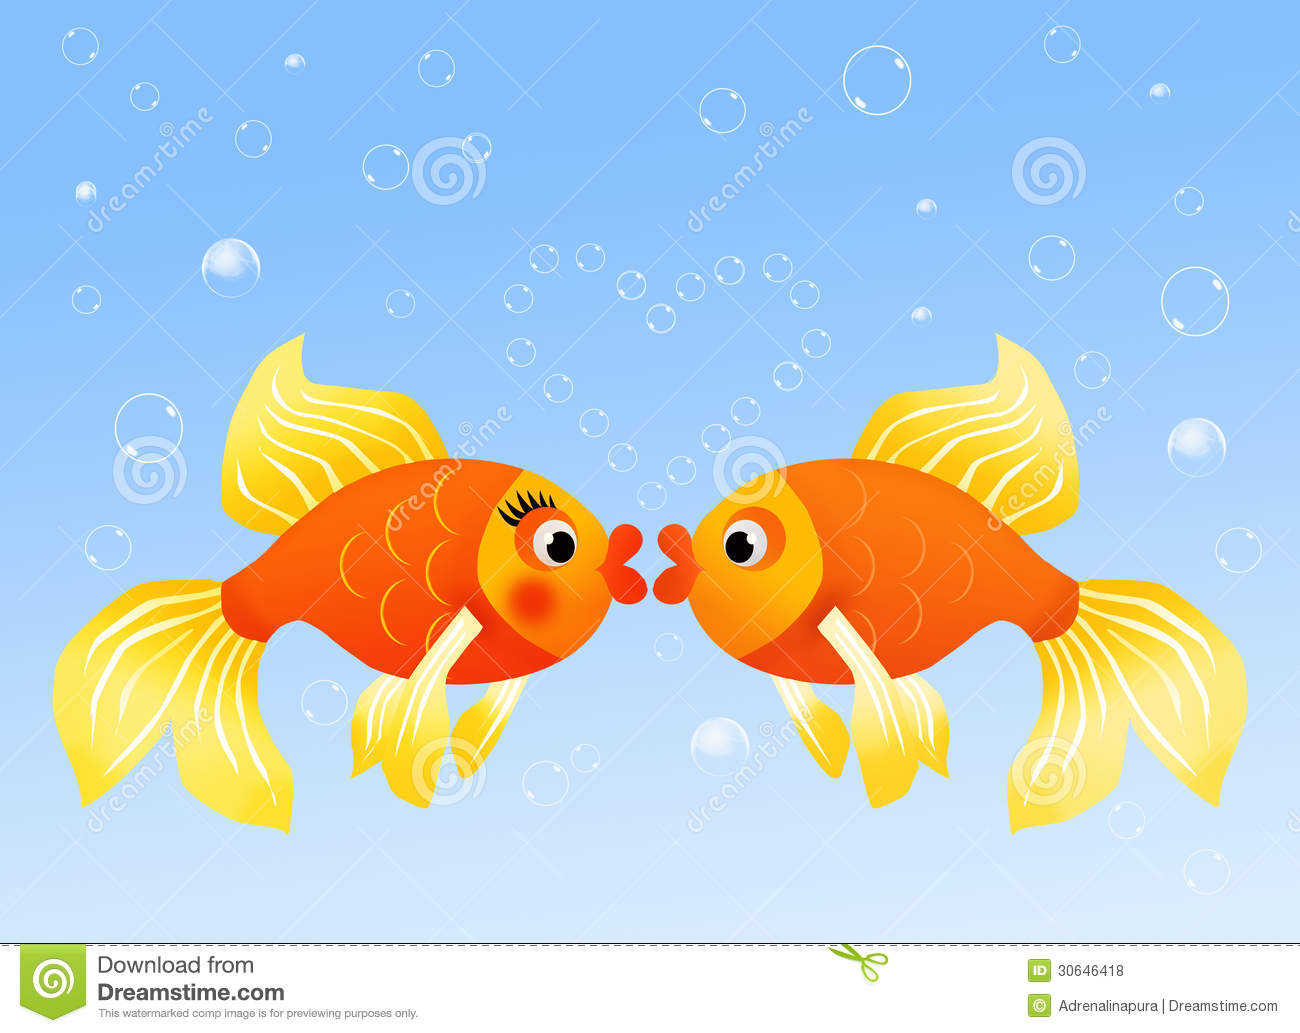 Fish in love royalty free stock photos image 30646418 for I love the fishes